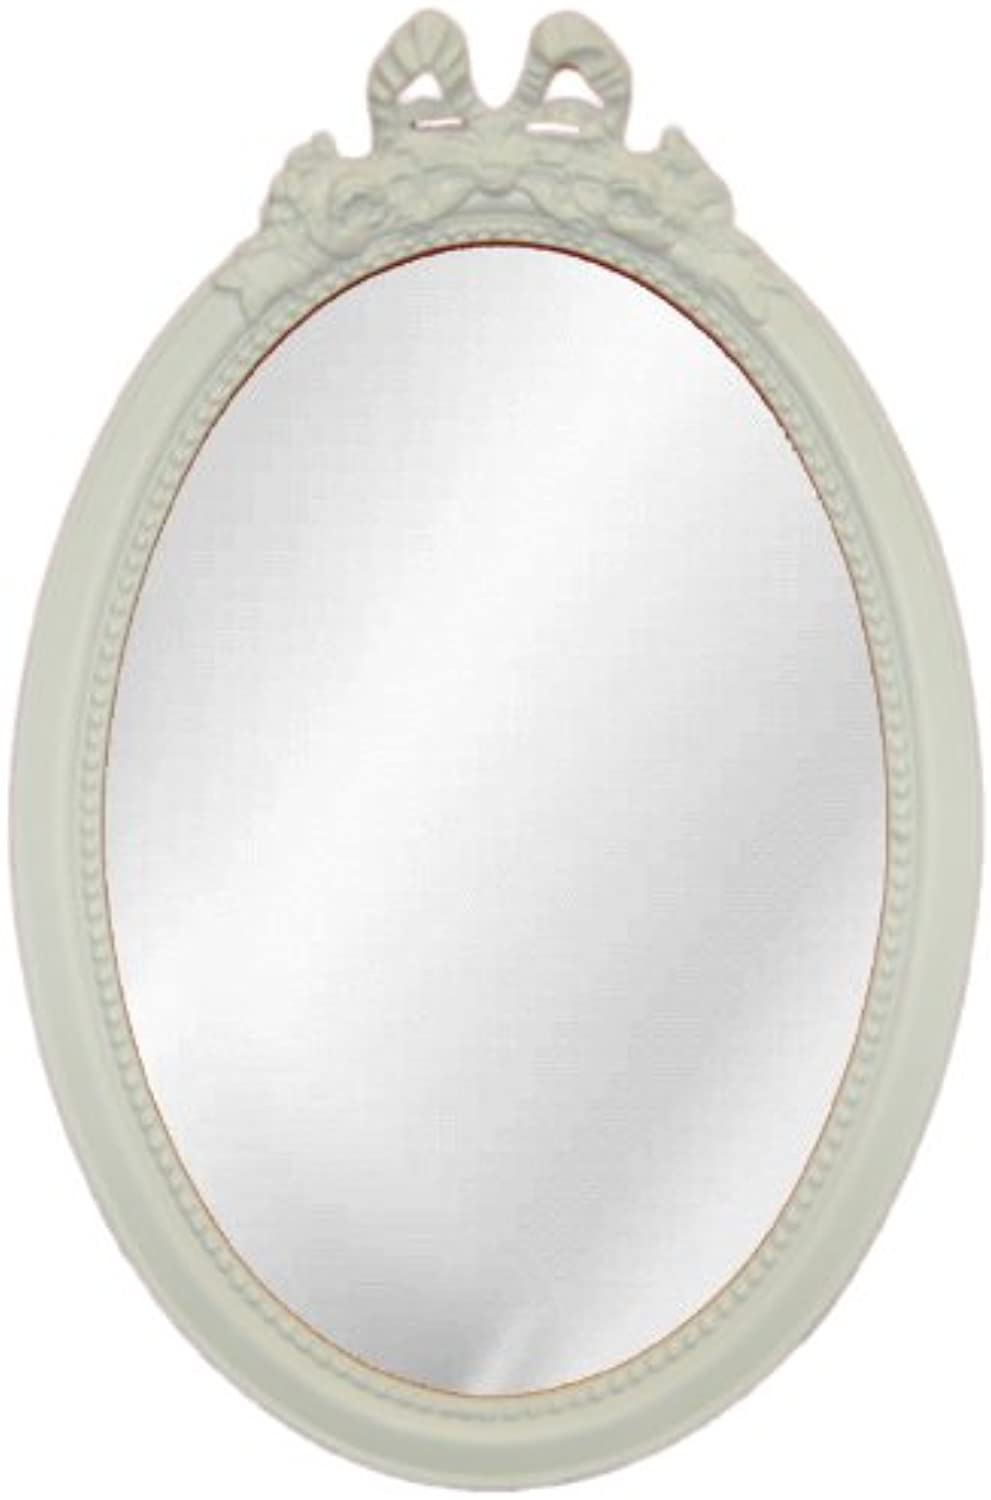 Hickory Manor House Oval with Bow Mirror with Pecan Shell Resin, Bright White